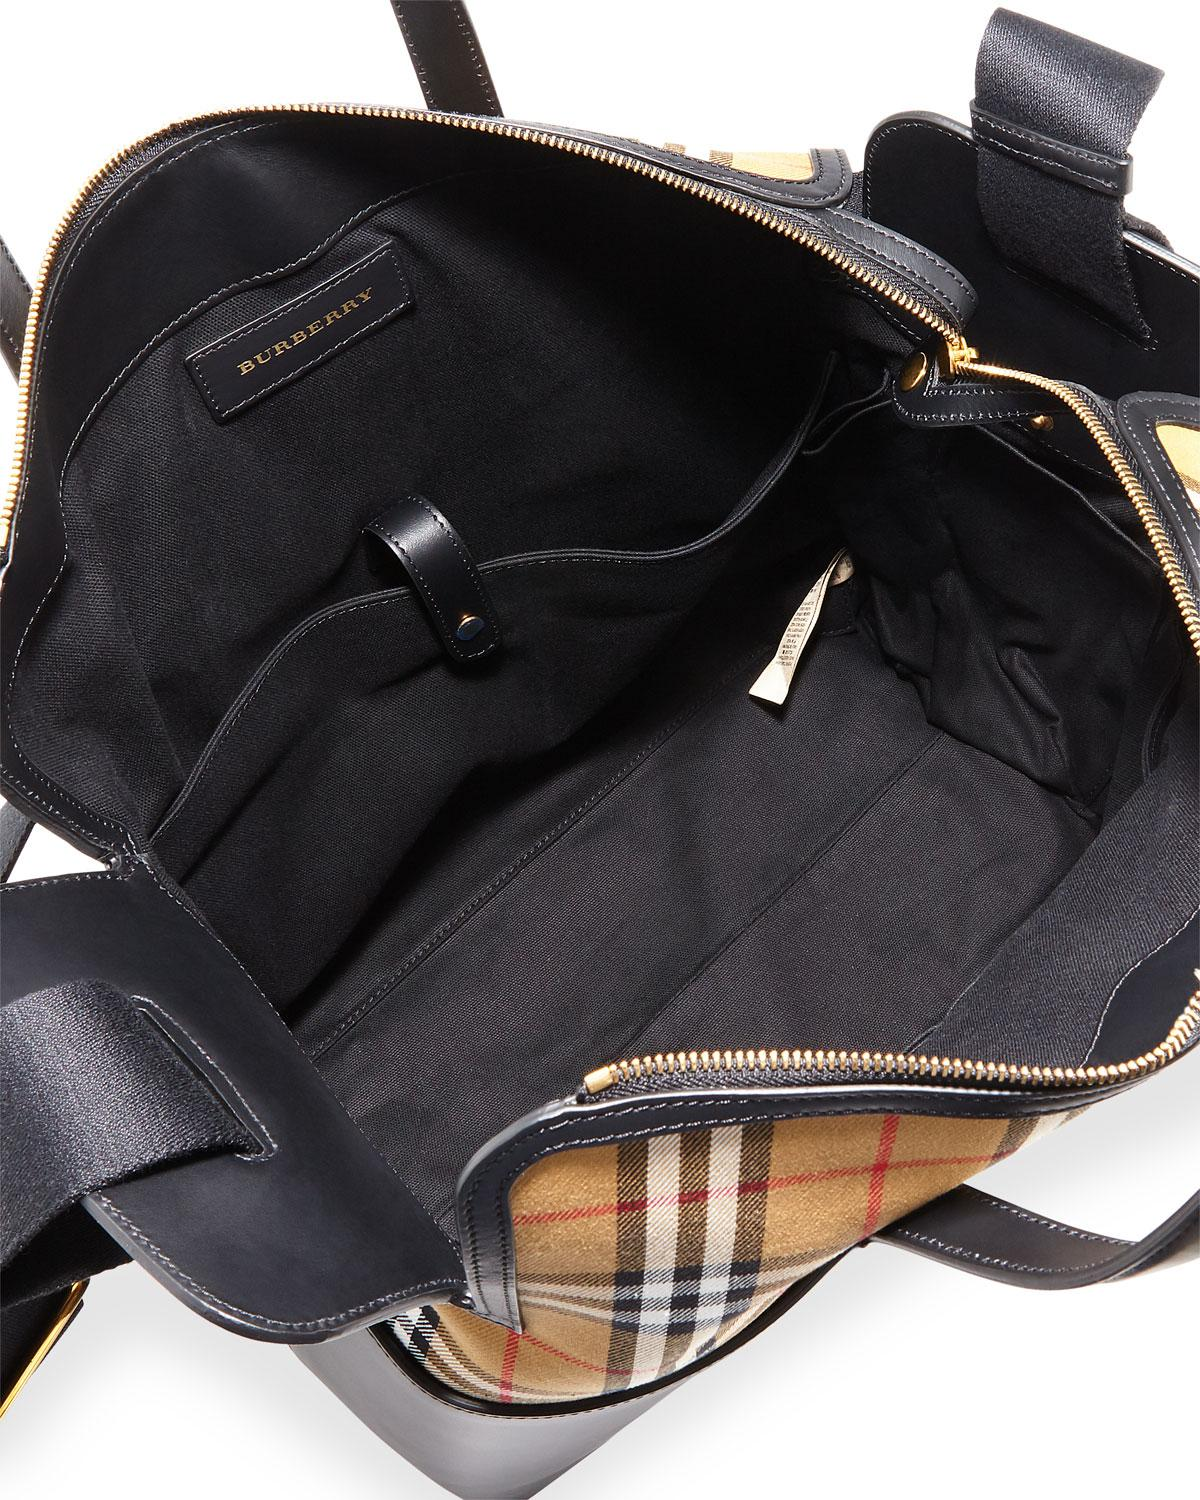 Lyst - Burberry Kingswood Vintage Check   Leather Diaper Bag in Black 87b961ba33819